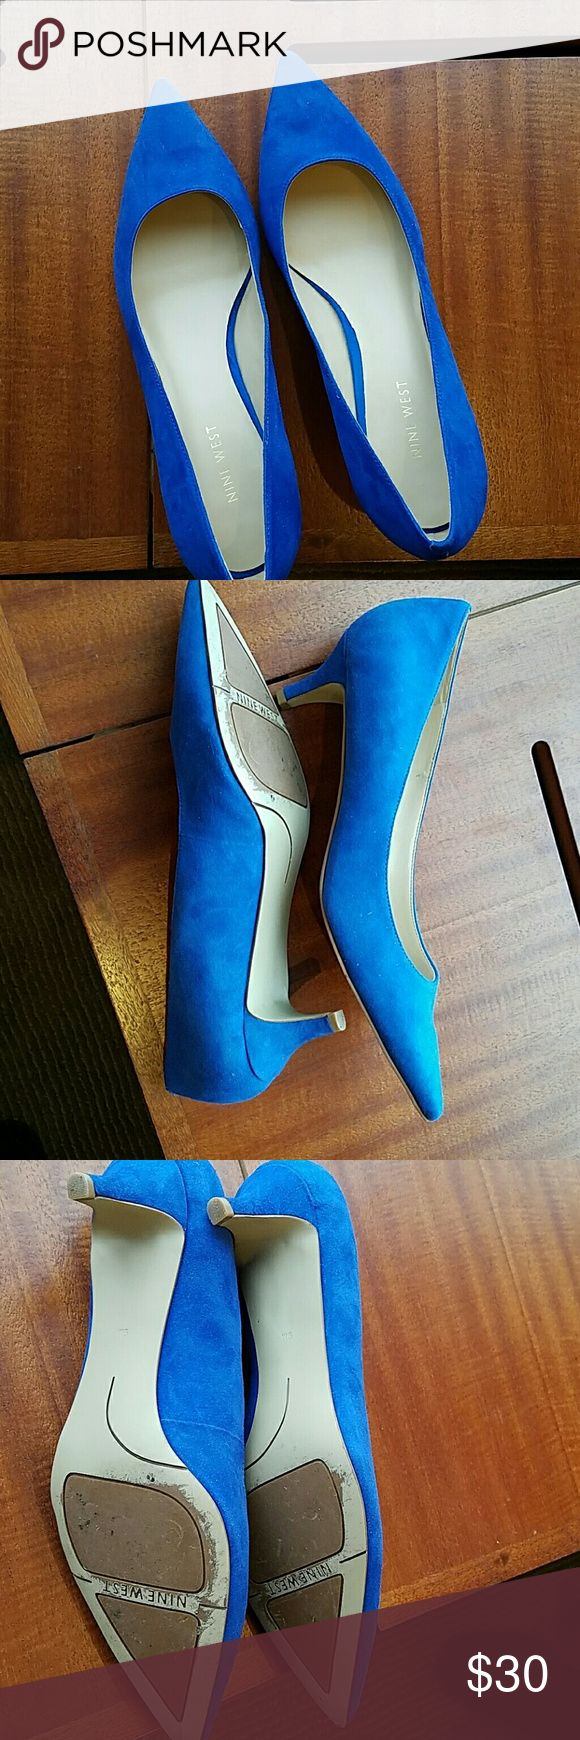 Nine West gorgeous blue suede heels Gorgeous blue suede kitten heel pumps pointy front worn1x. Smoke and pet free home. No box Nine West Shoes Heels